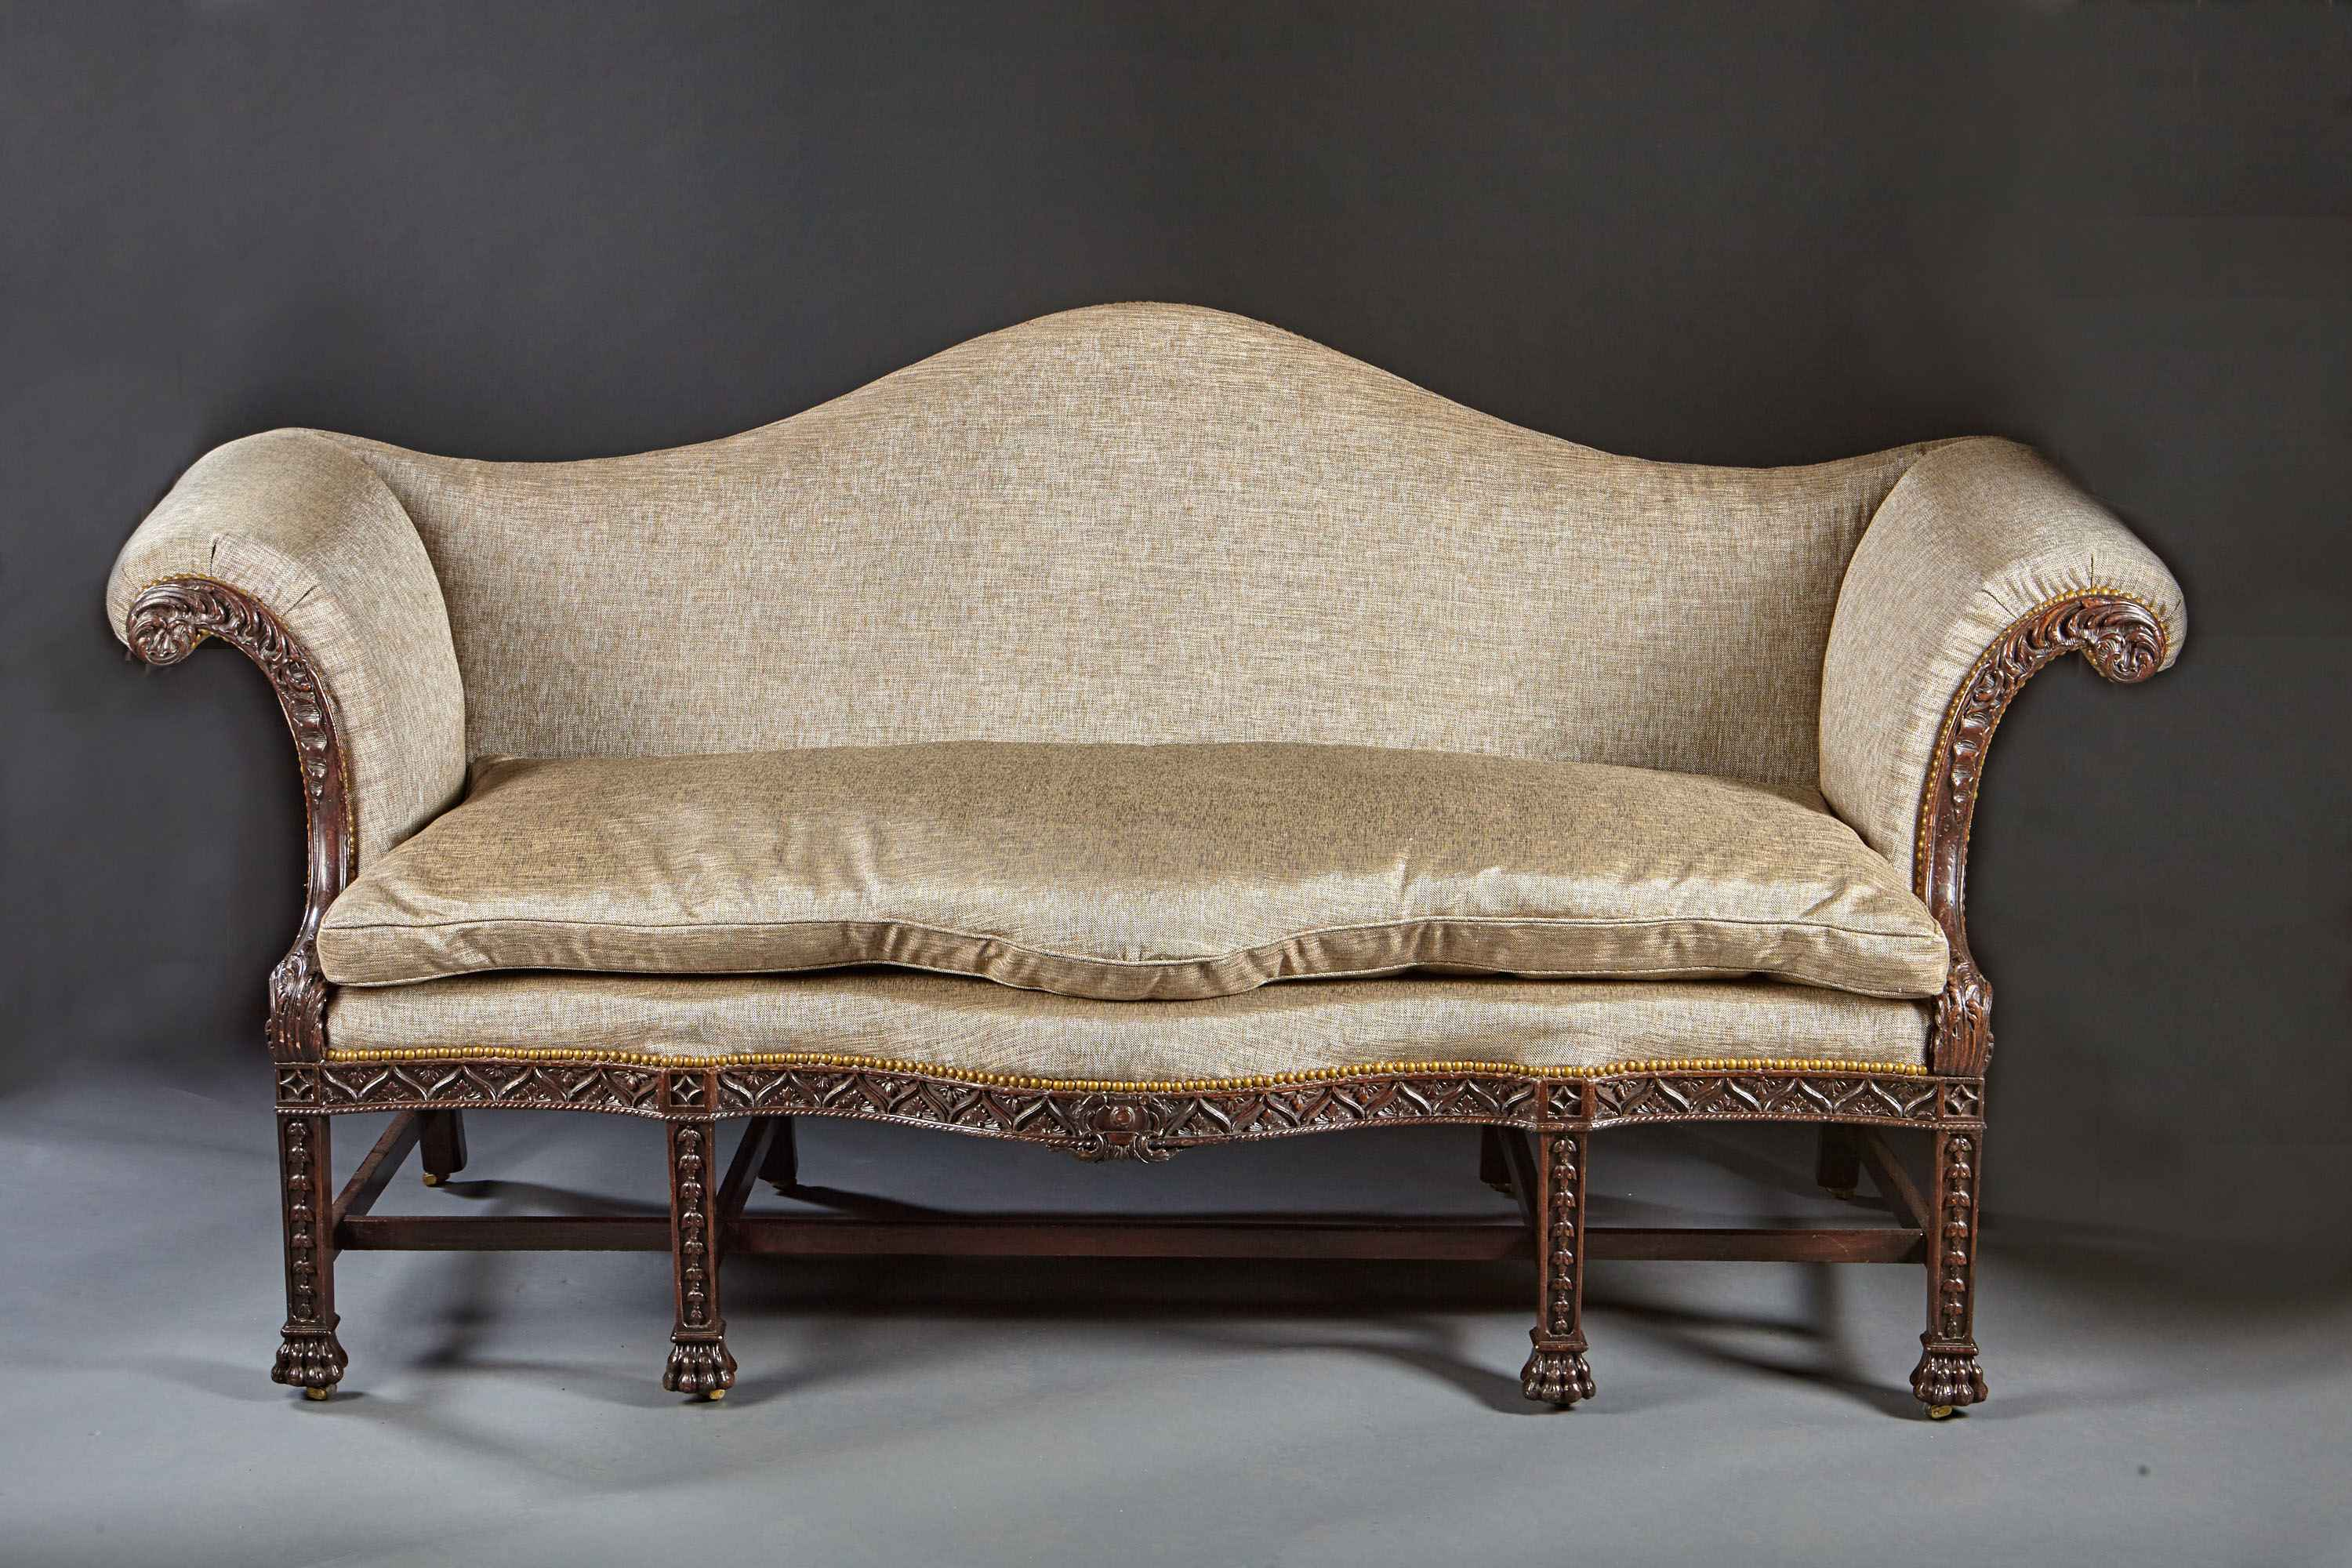 A Beautifully Carved Chippendale Sofa By B Sergeant